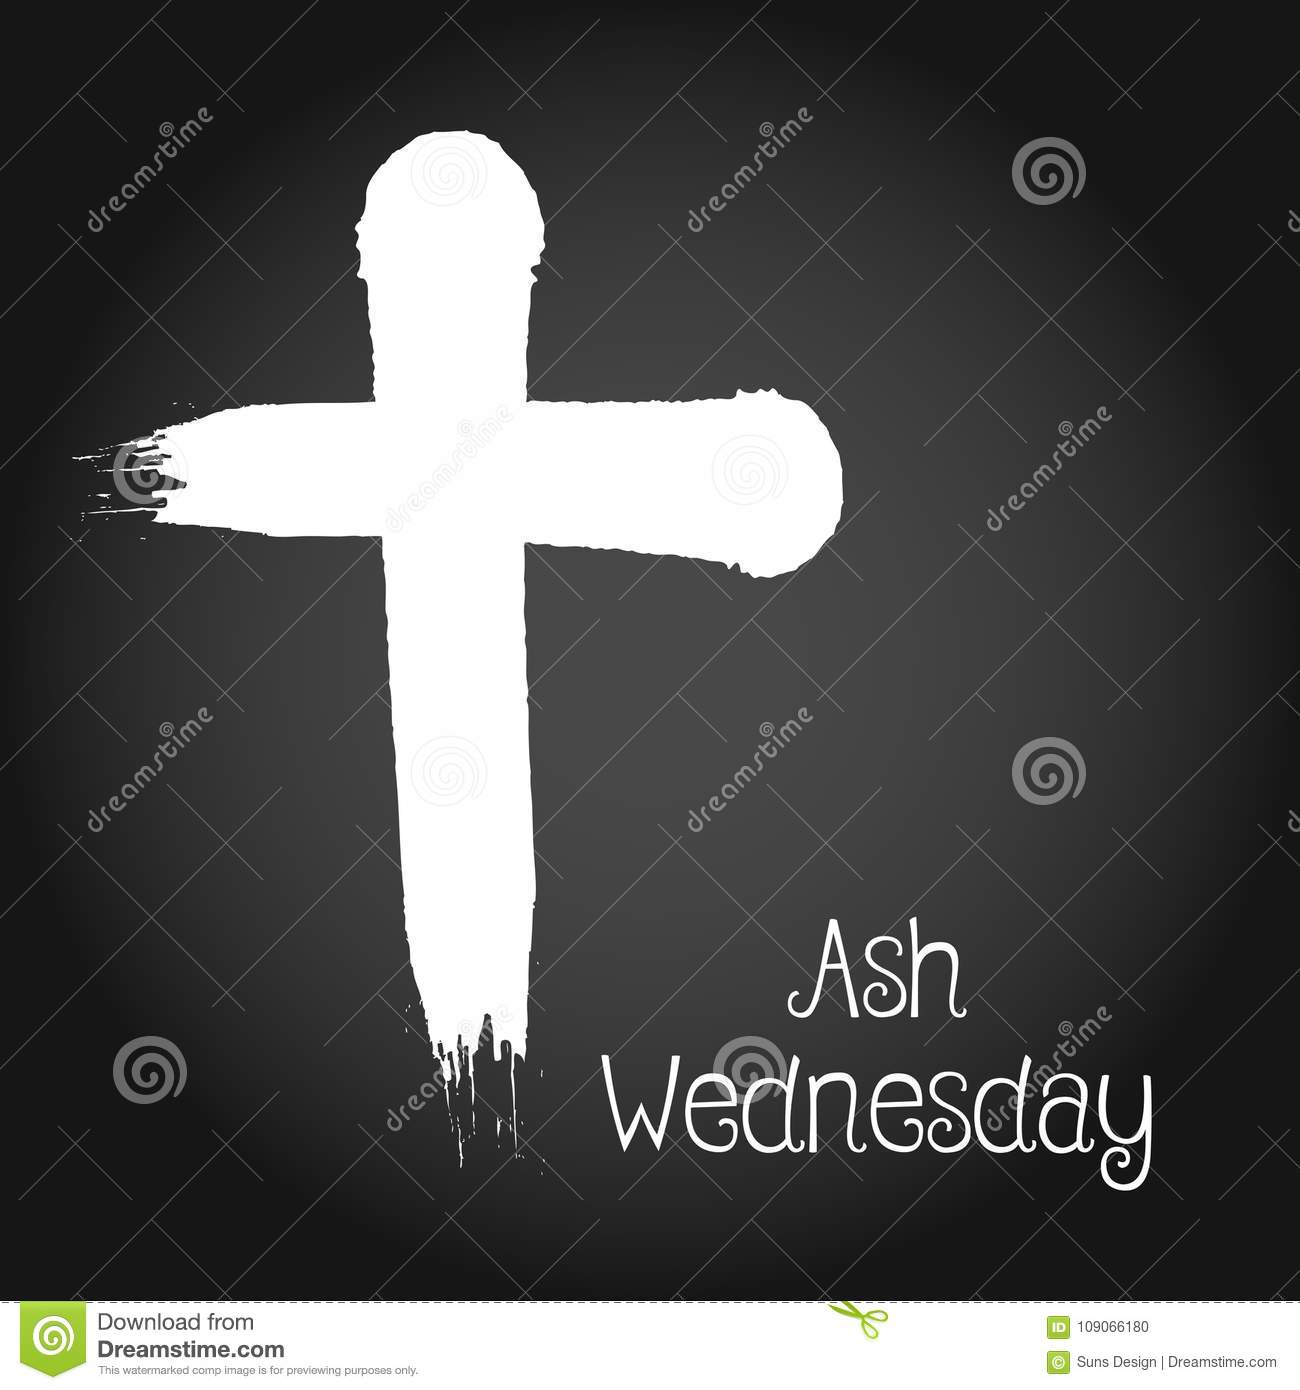 Ash wednesday stock illustration illustration of worship 109066180 ash wednesday worship forgiveness buycottarizona Image collections